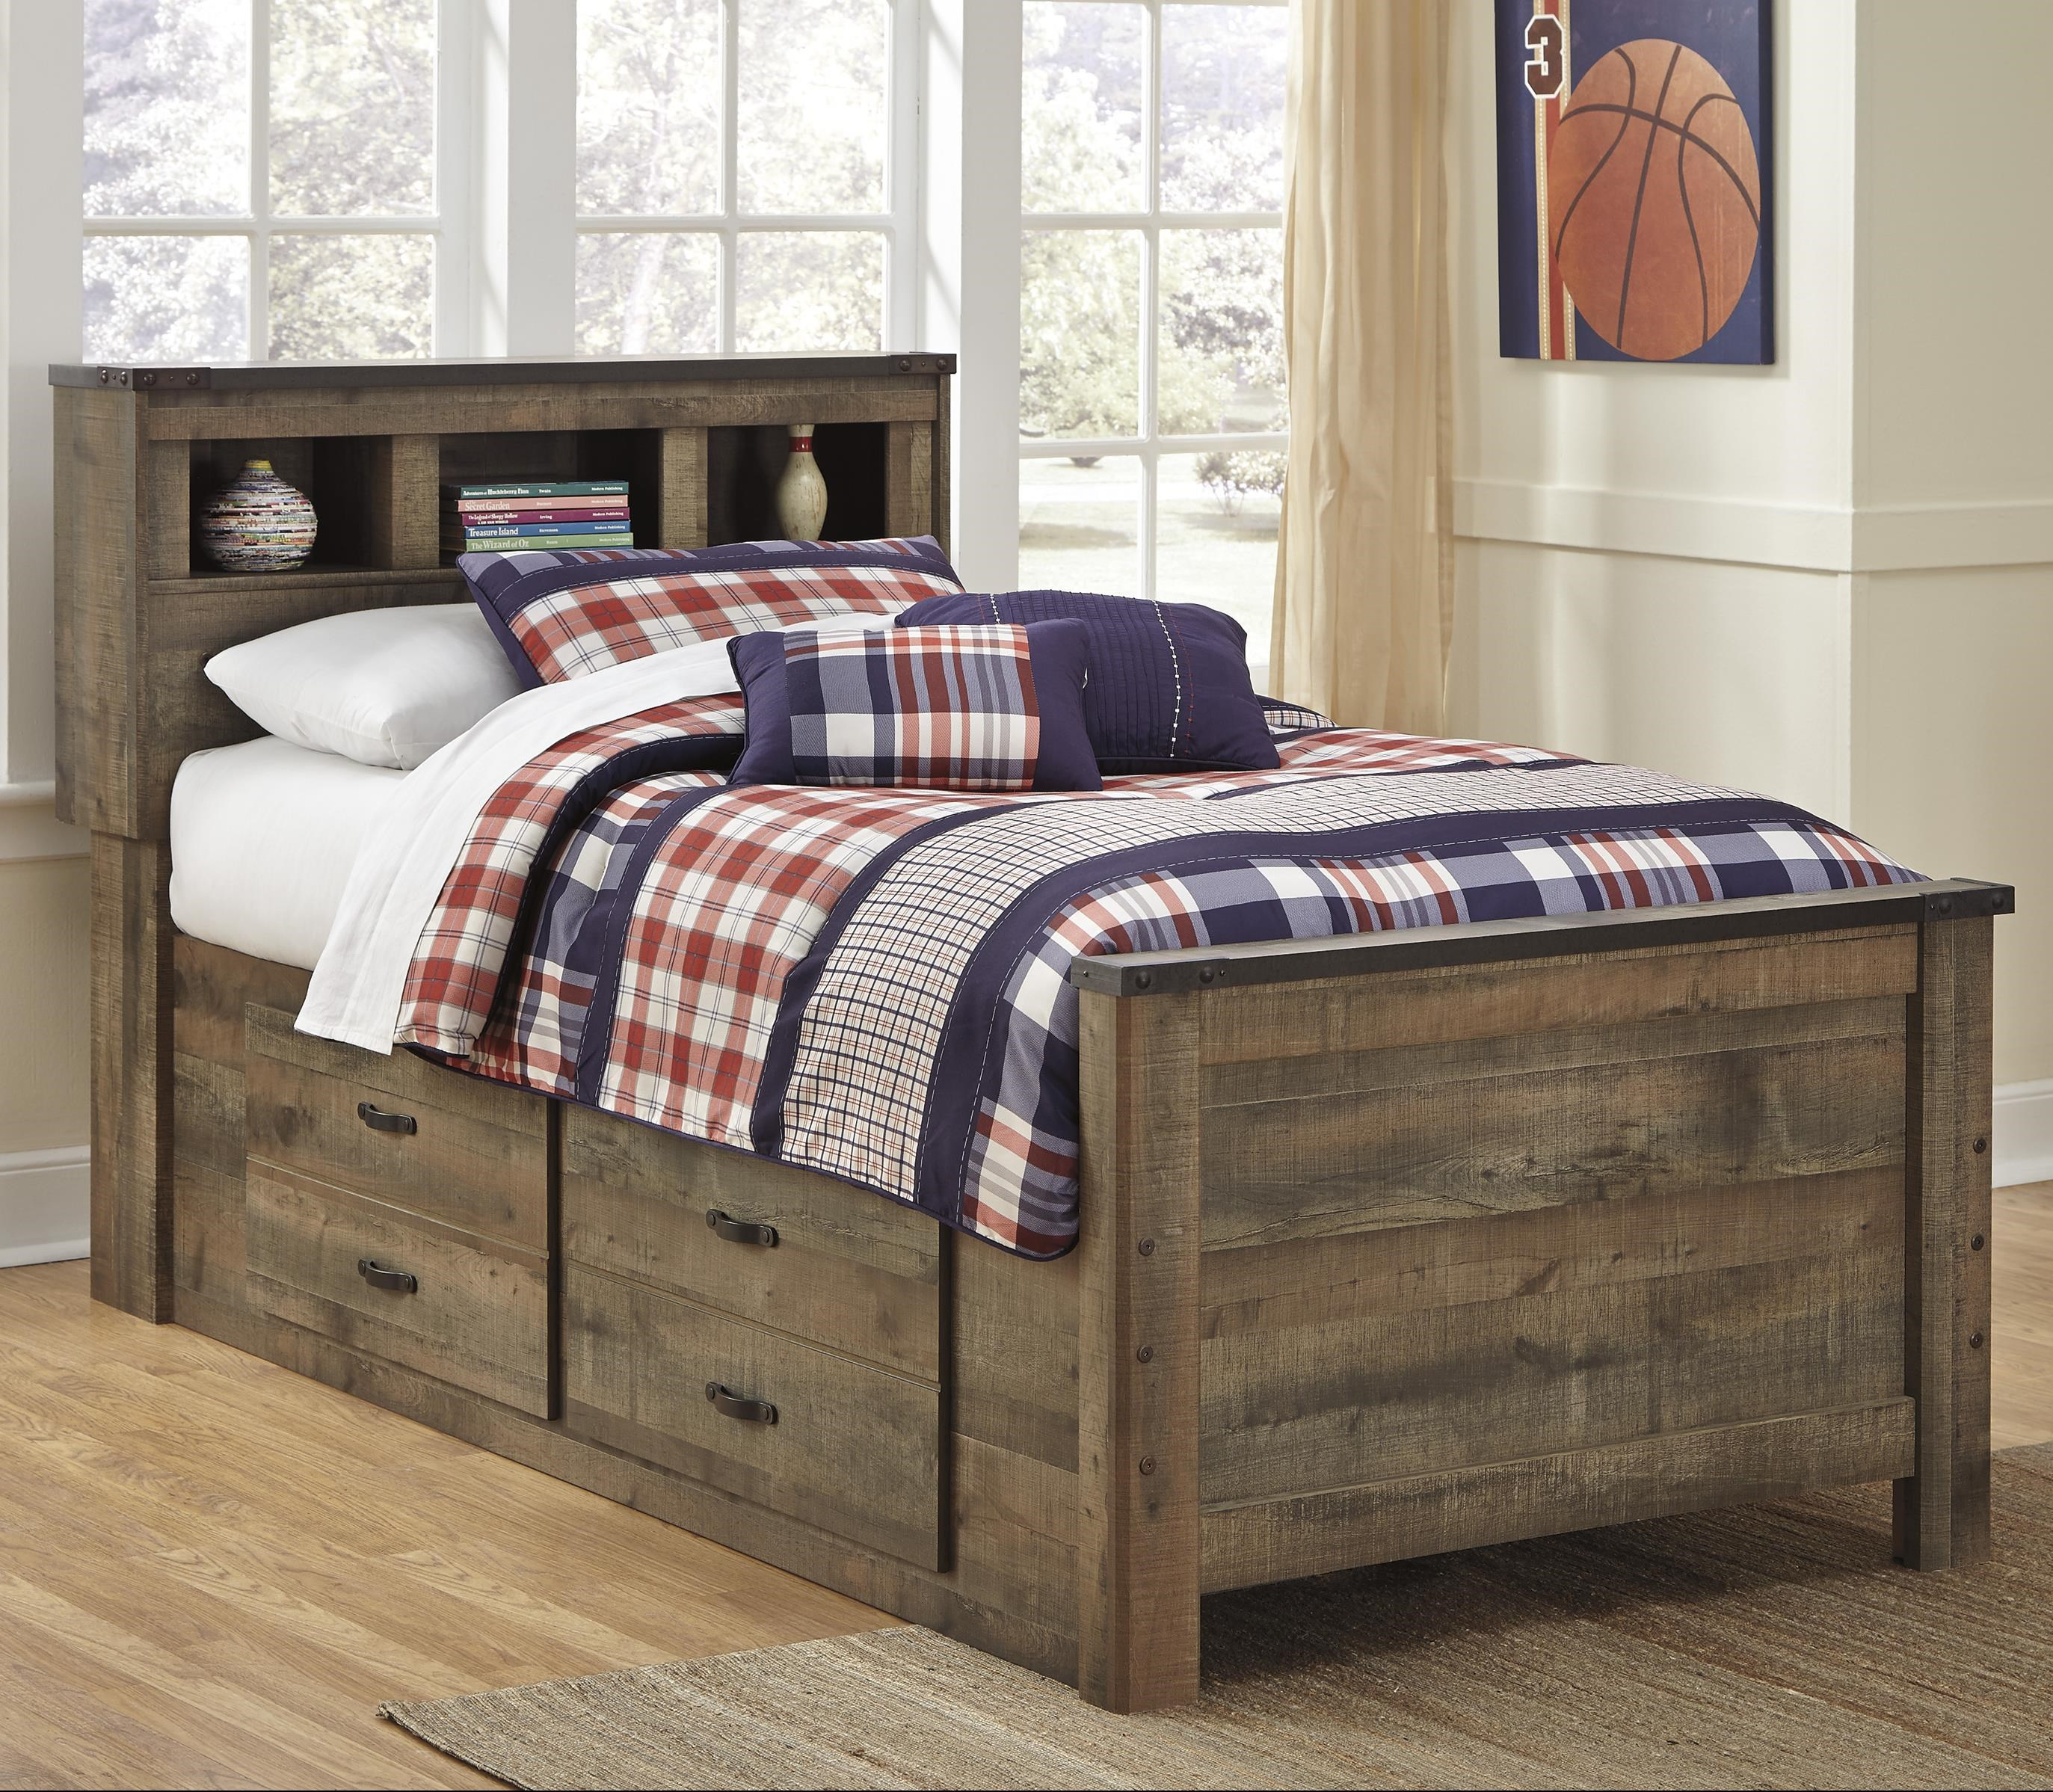 Picture of: Signature Design By Ashley Trinell Rustic Look Twin Bookcase Bed With Under Bed Storage Royal Furniture Bookcase Beds